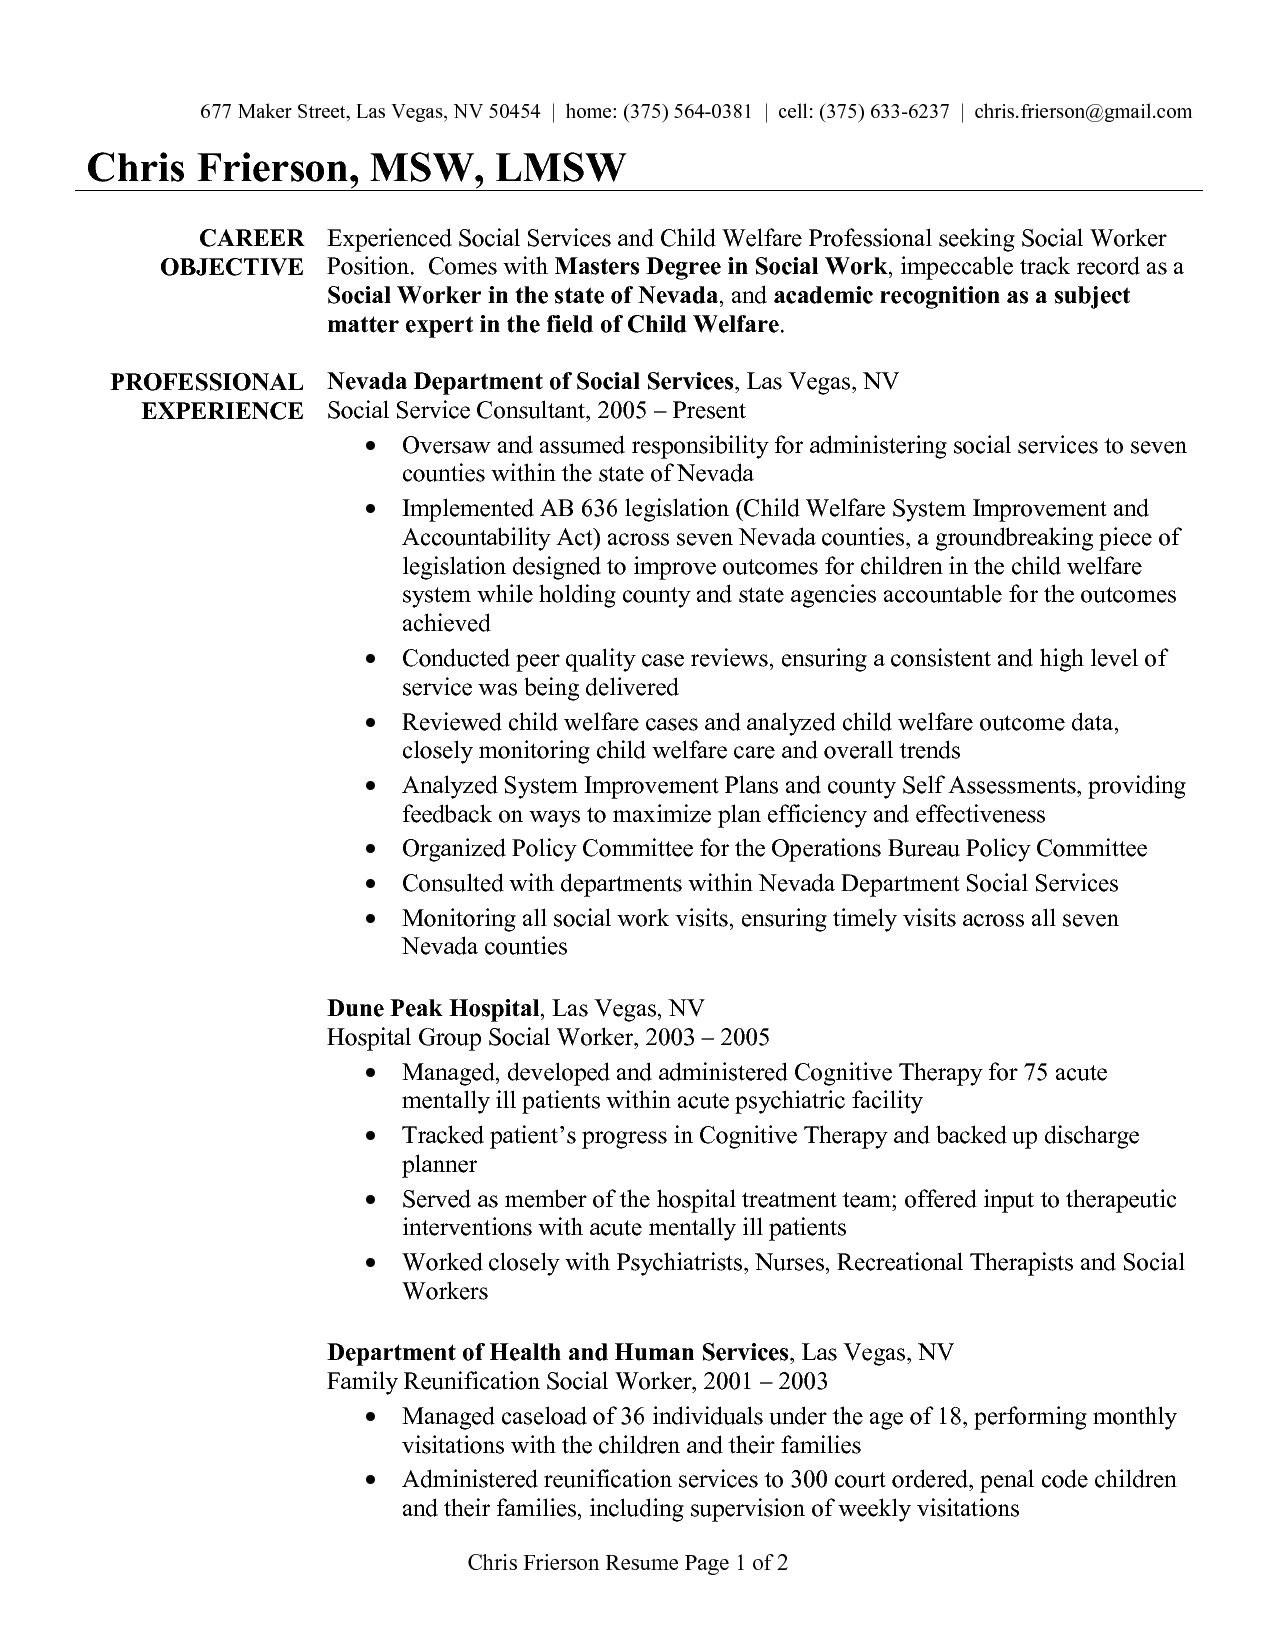 Work Resume Template Social Work Resume Examples  Social Worker Resume Sample